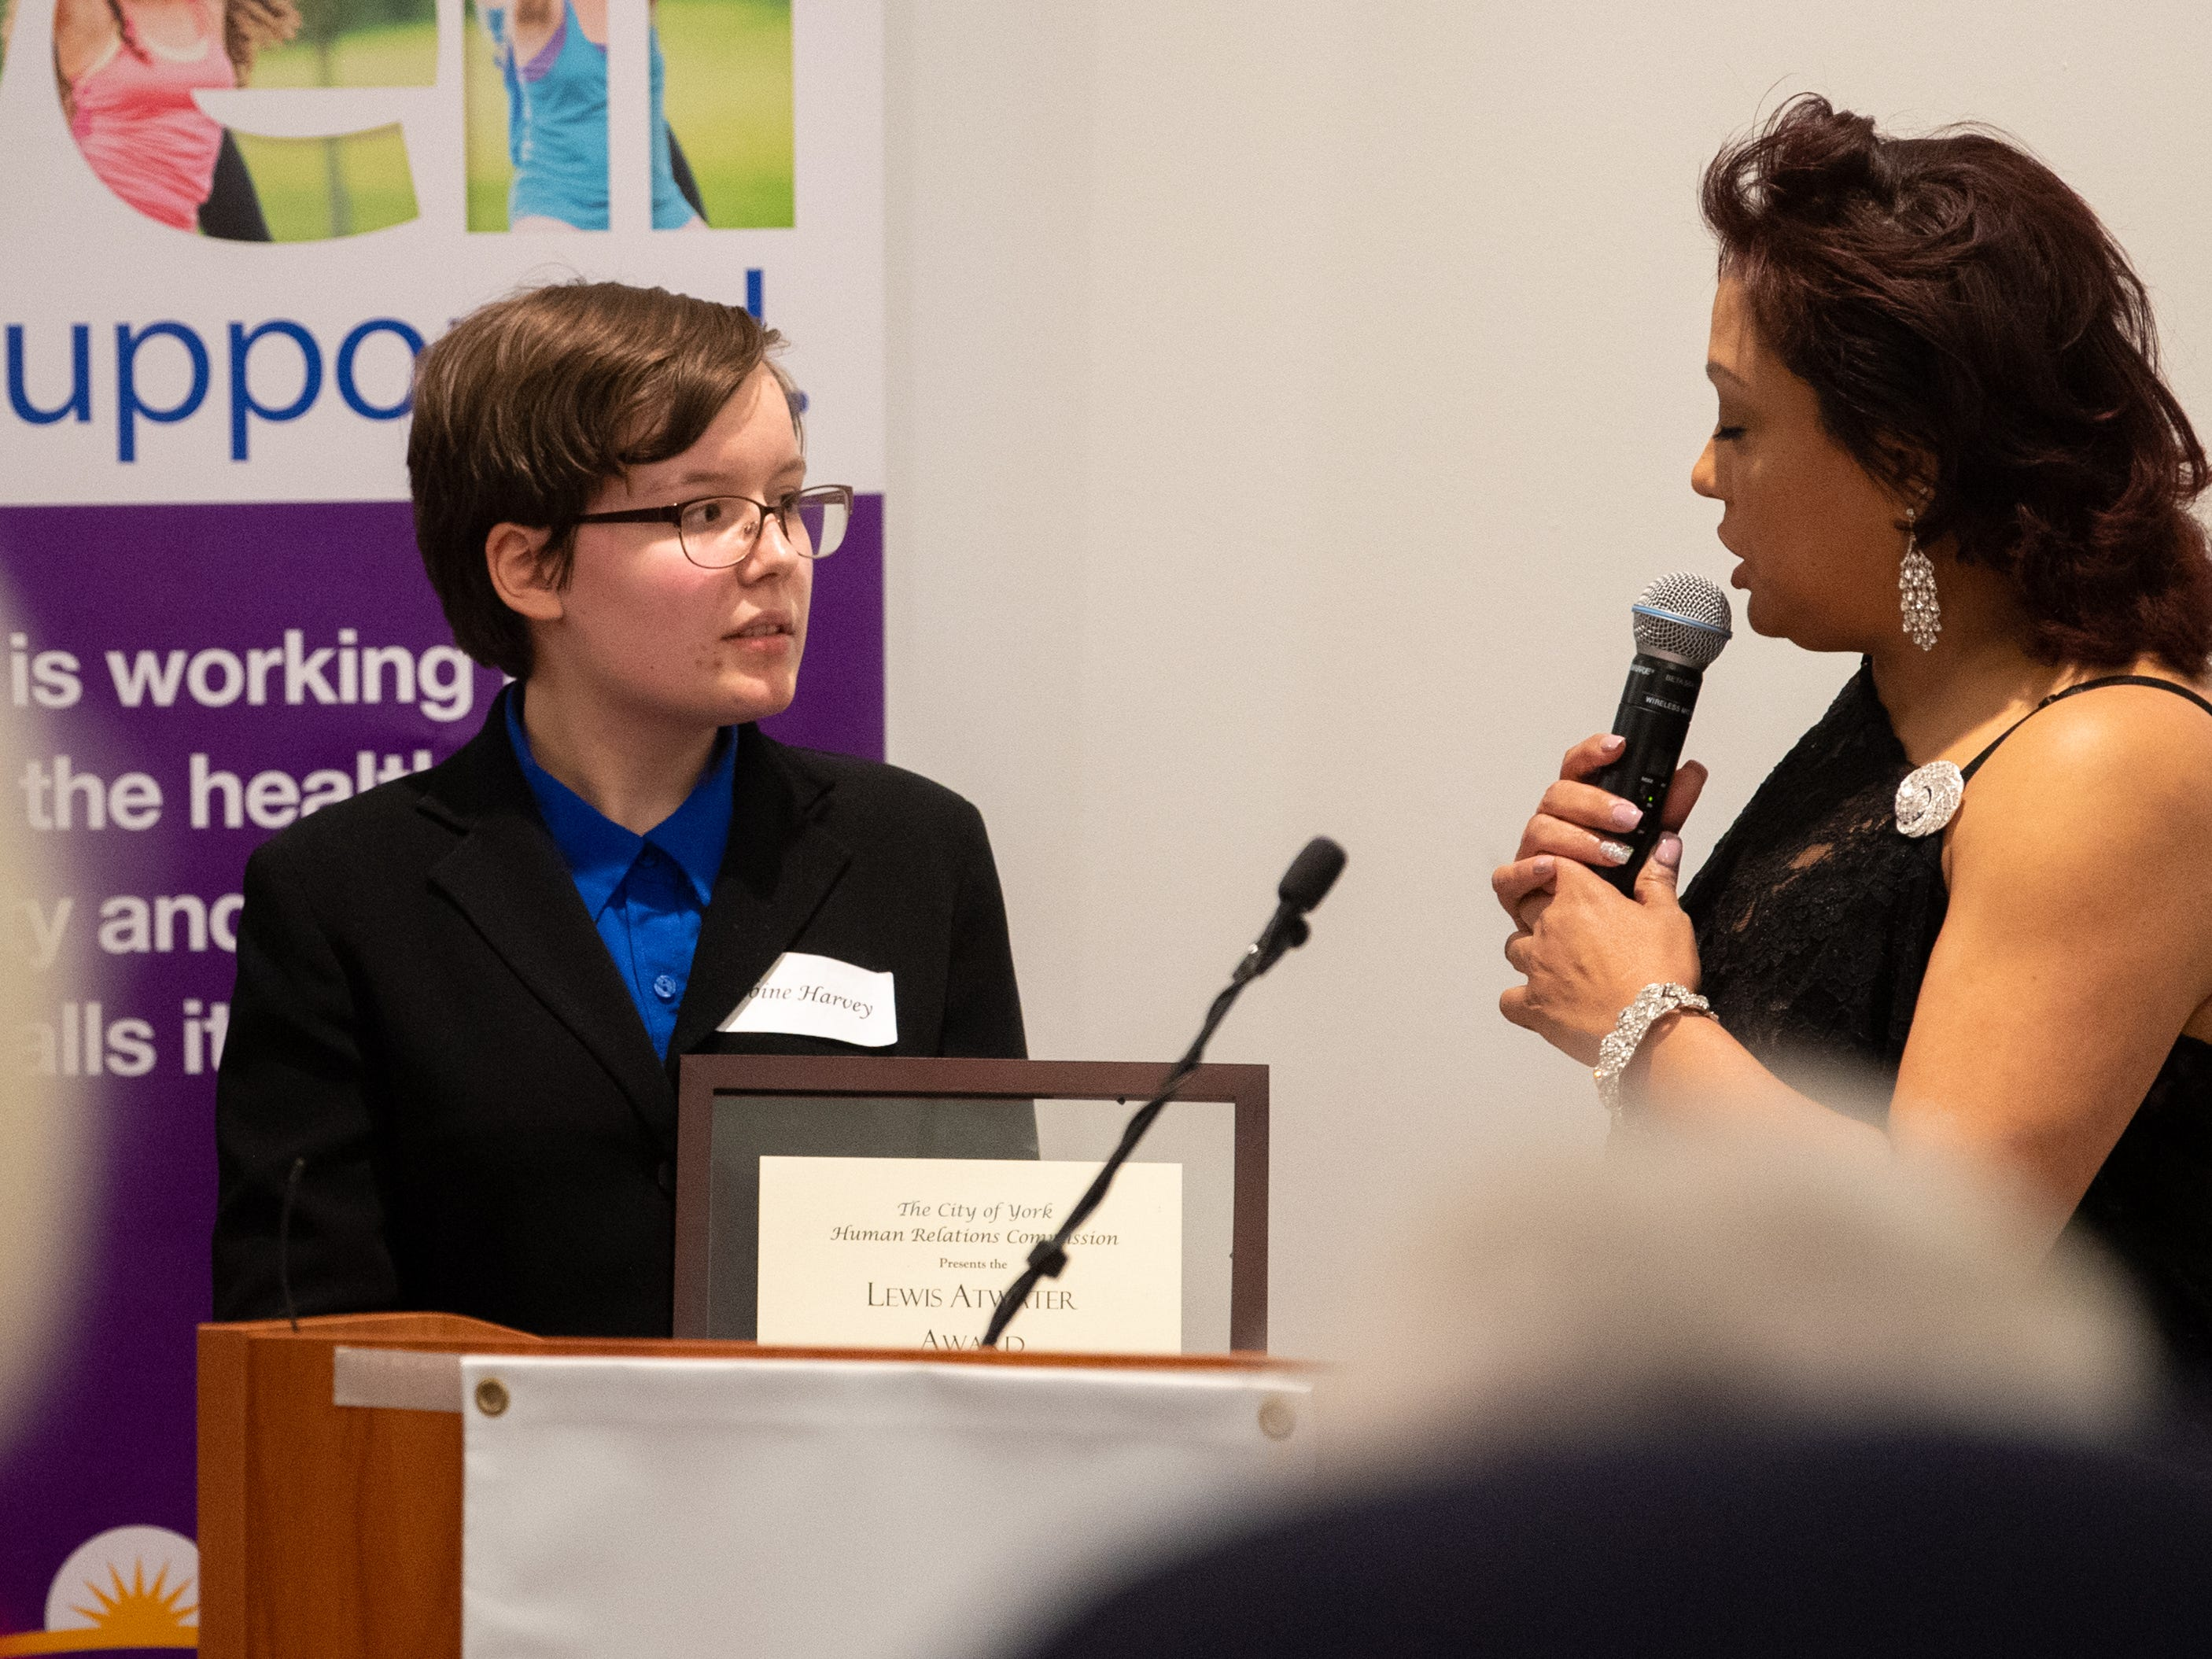 Lewis Atwater Award winner Sabine Harvey (left) listens intently to a recap of all her accomplishments during the 2019 City of York Human Relations Commission Diversity Dinner at York College, January 9, 2019.